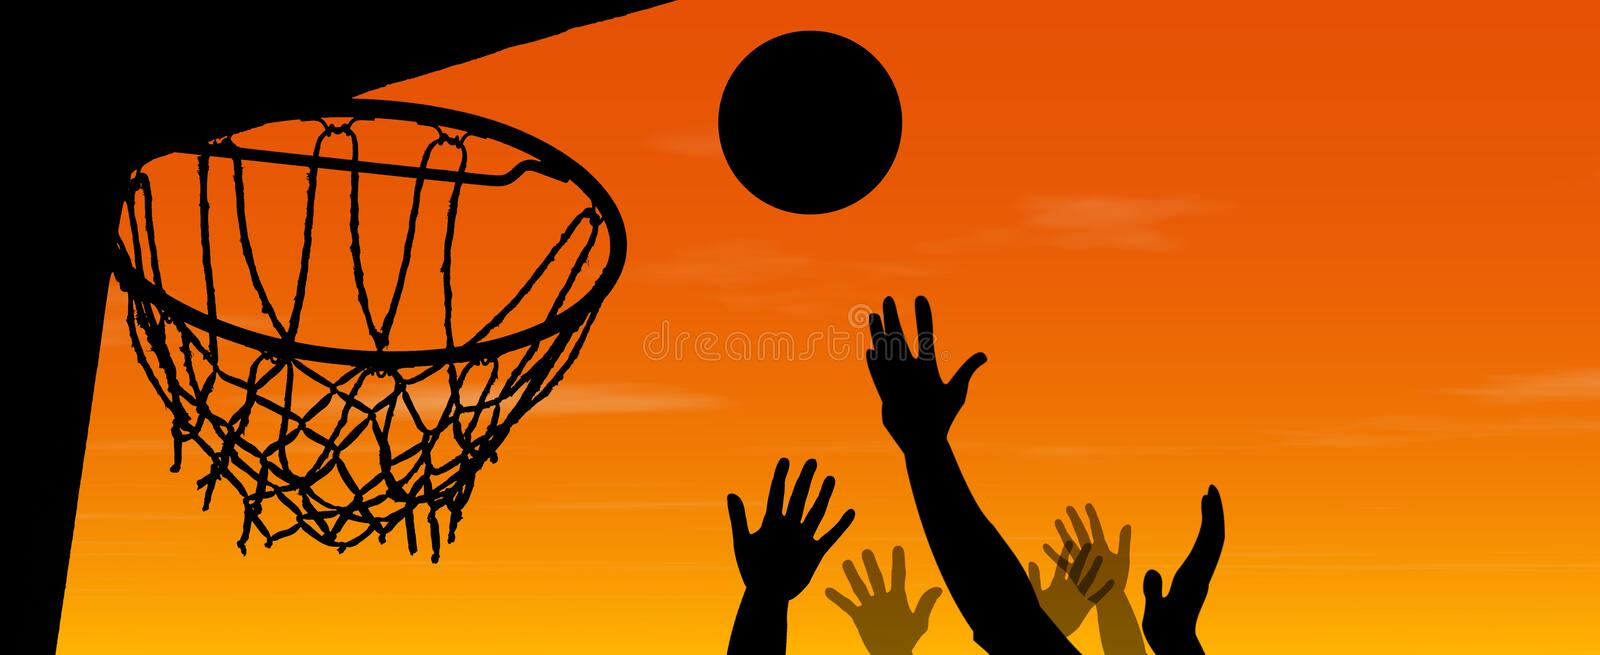 Download Basketball Sunset Match Stock Photos - Image: 4874433